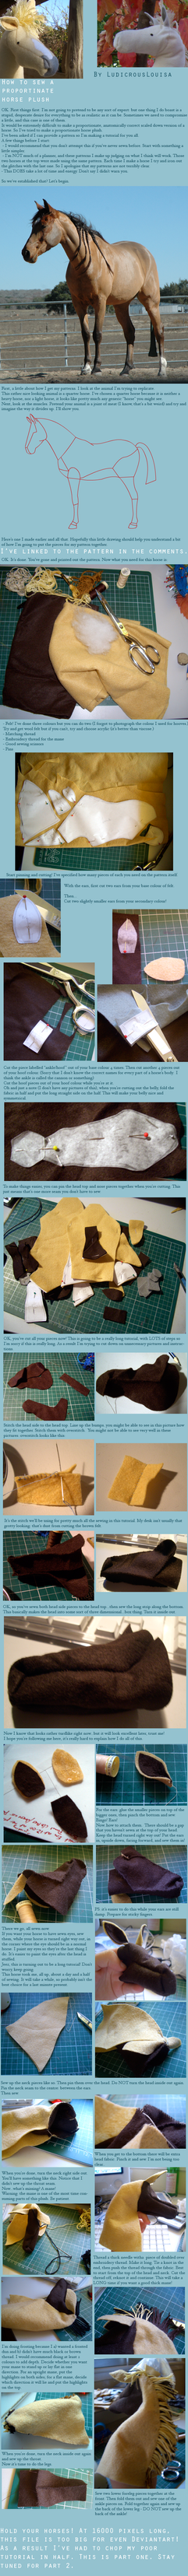 Horse plush tutorial part 1 by ludicrouslouisa